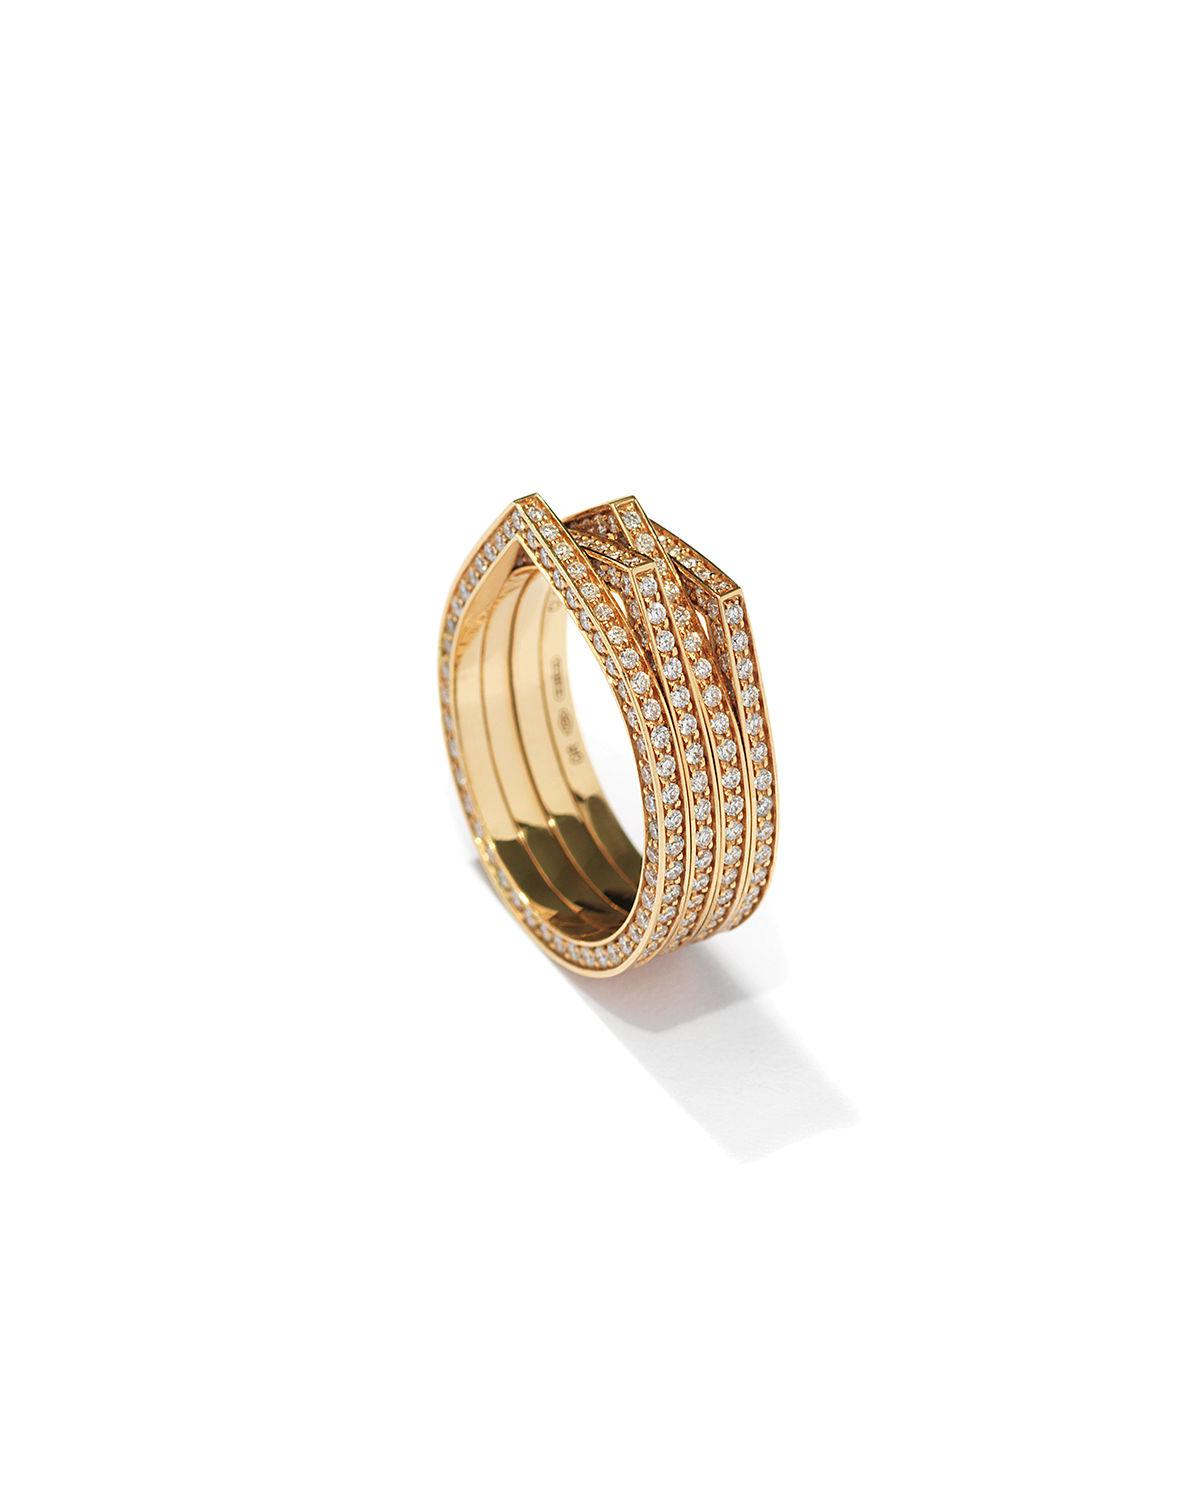 Repossi Antifer Four-Row Ring with Diamonds in 18K Gold BvI3pM